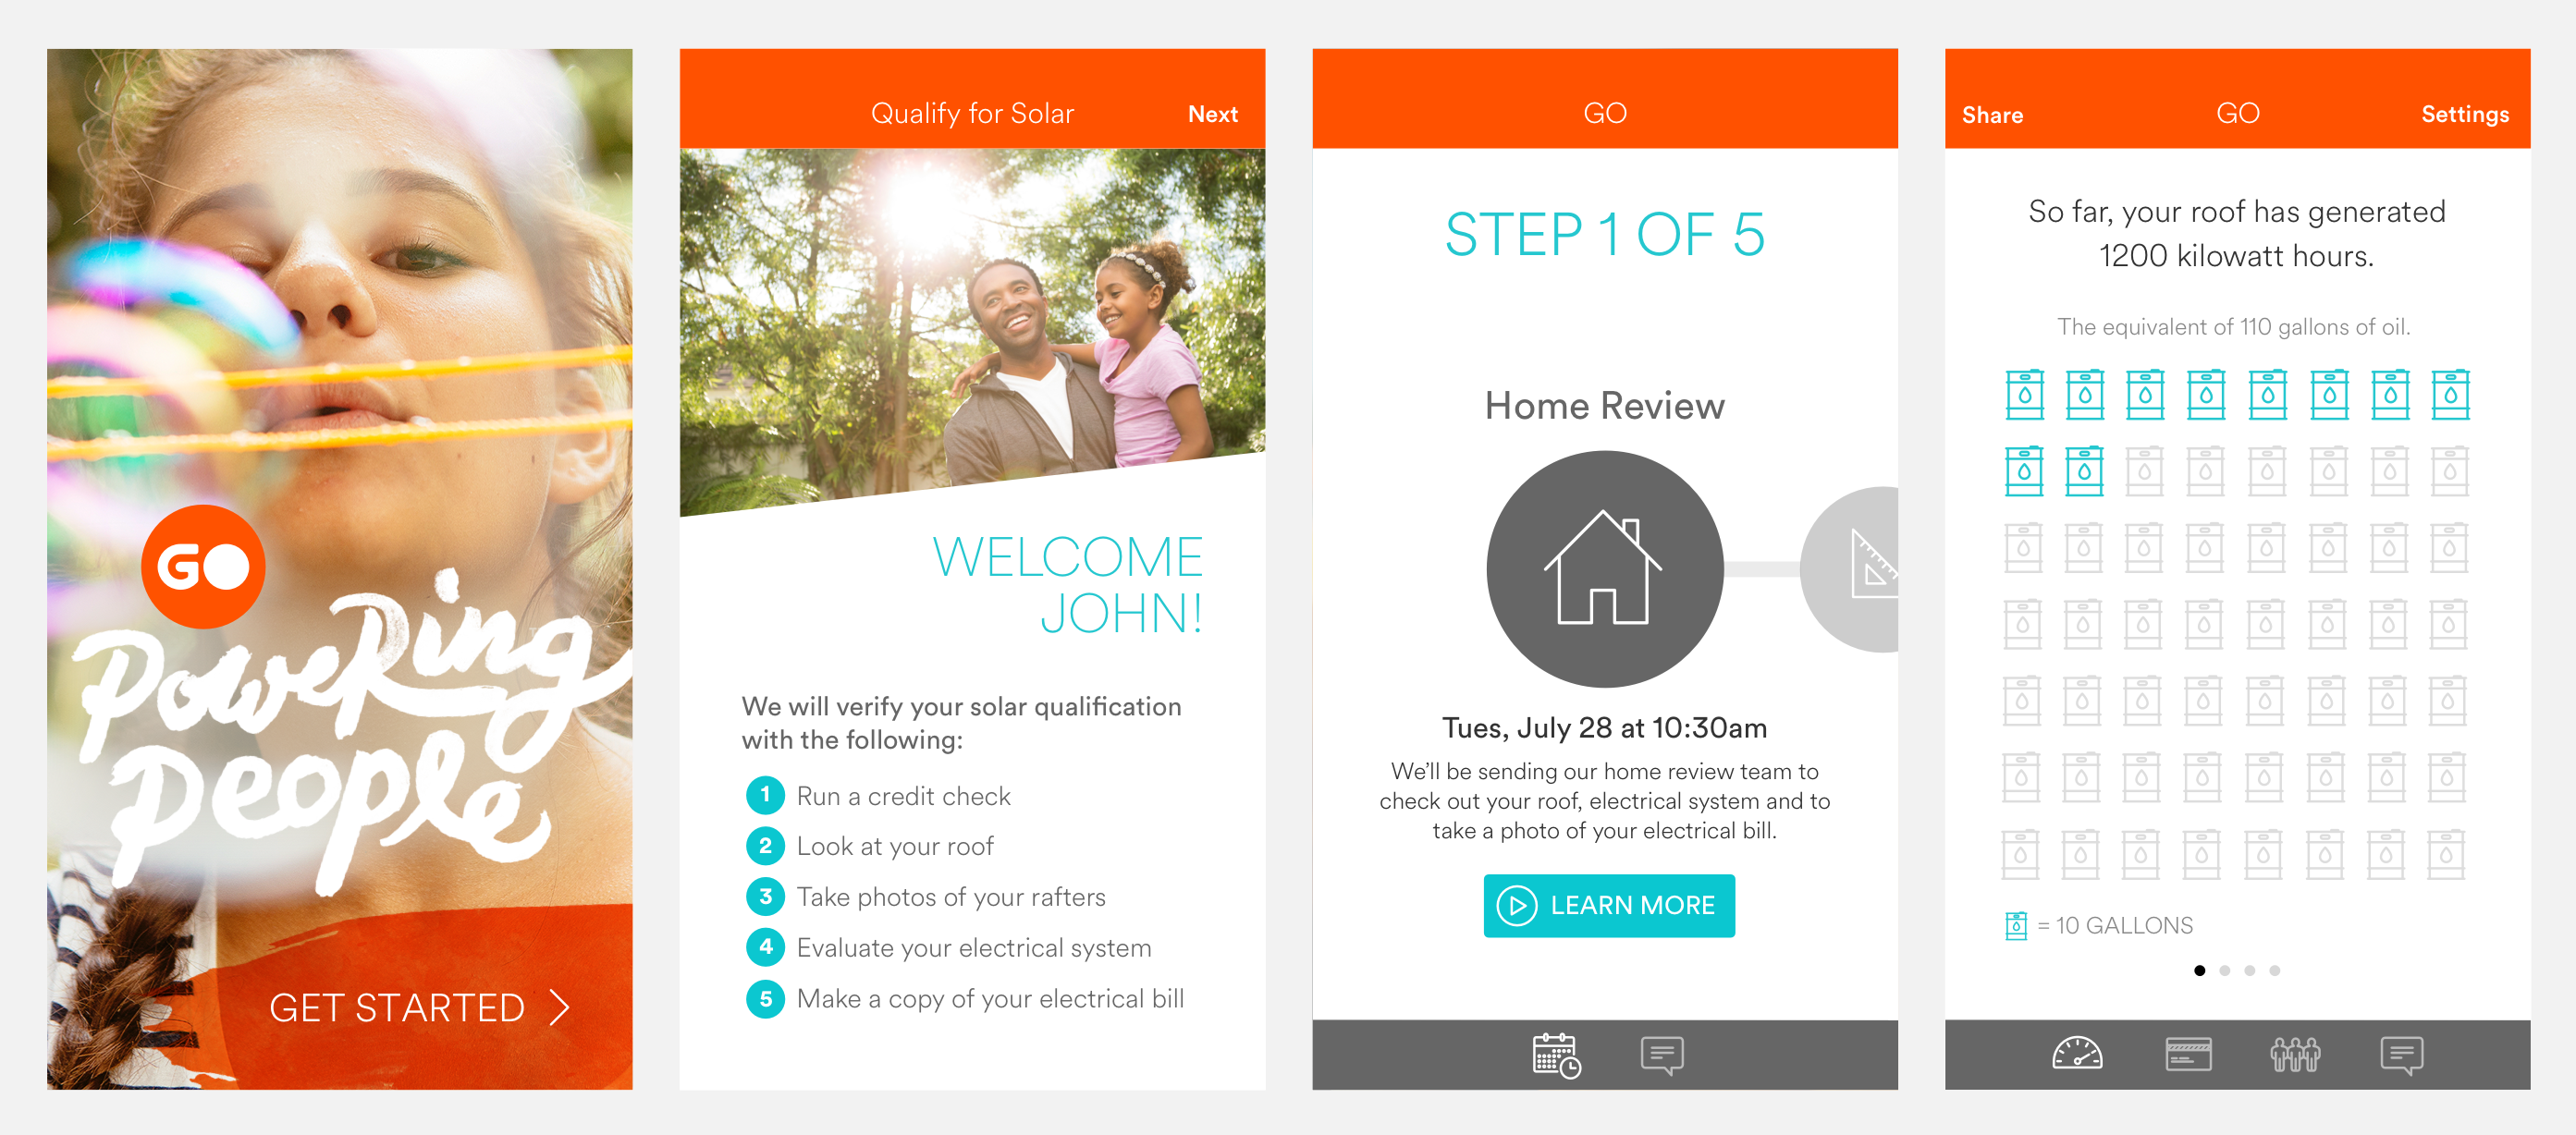 Worked as a contractor for Vivint Solar to build their customer app prototypes.